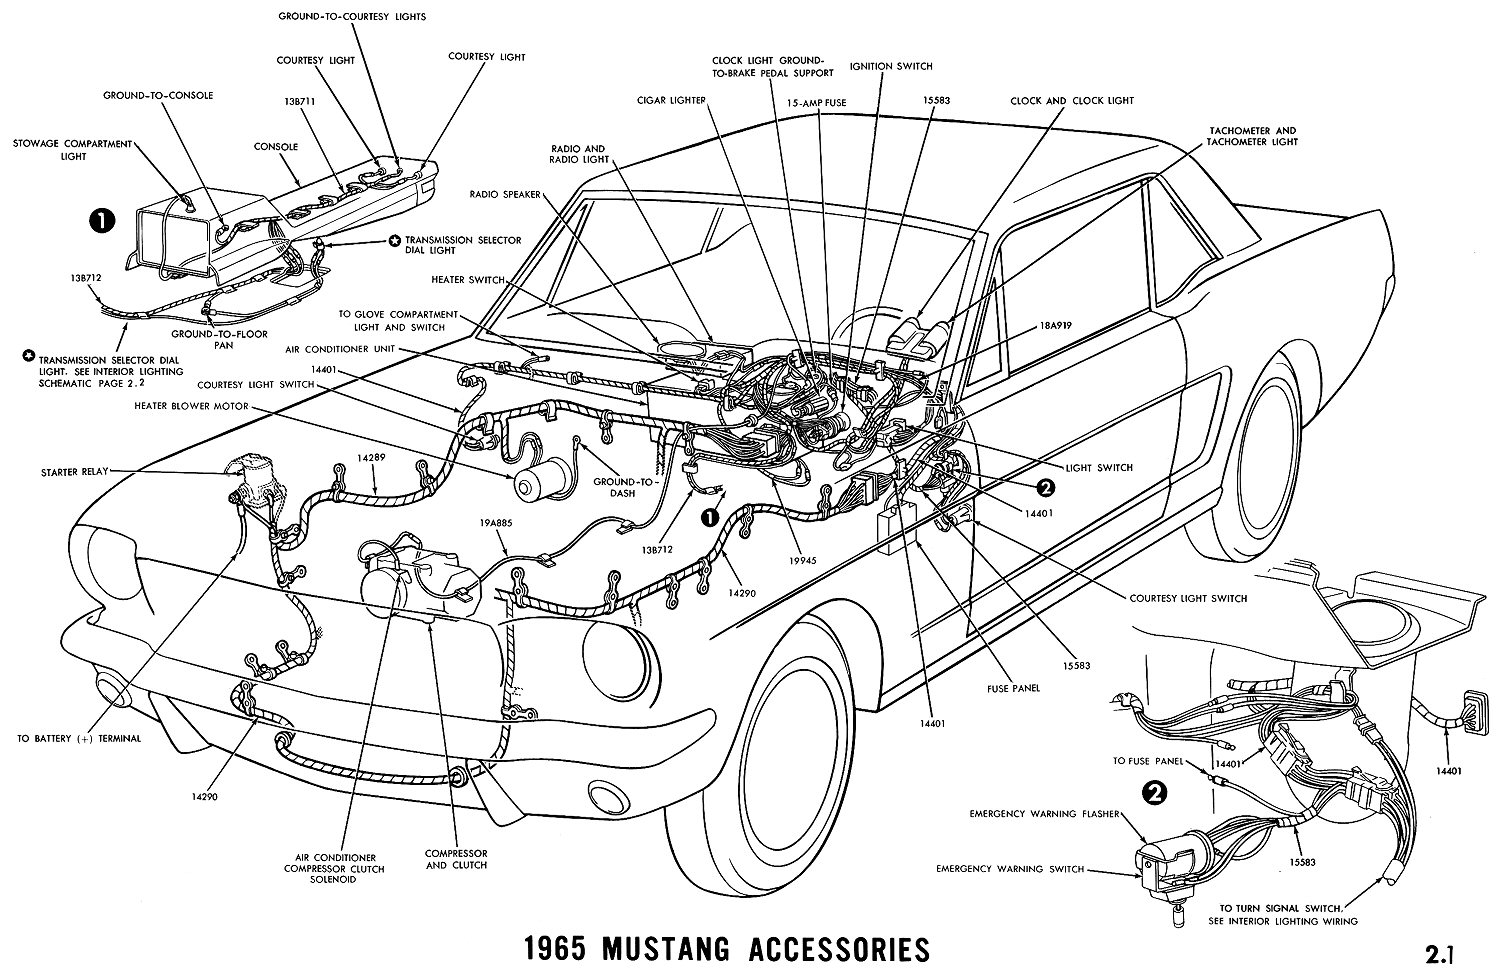 65 mustang accesories 1965 mustang accesories diagram 65 mustang ignition wiring diagram at mifinder.co